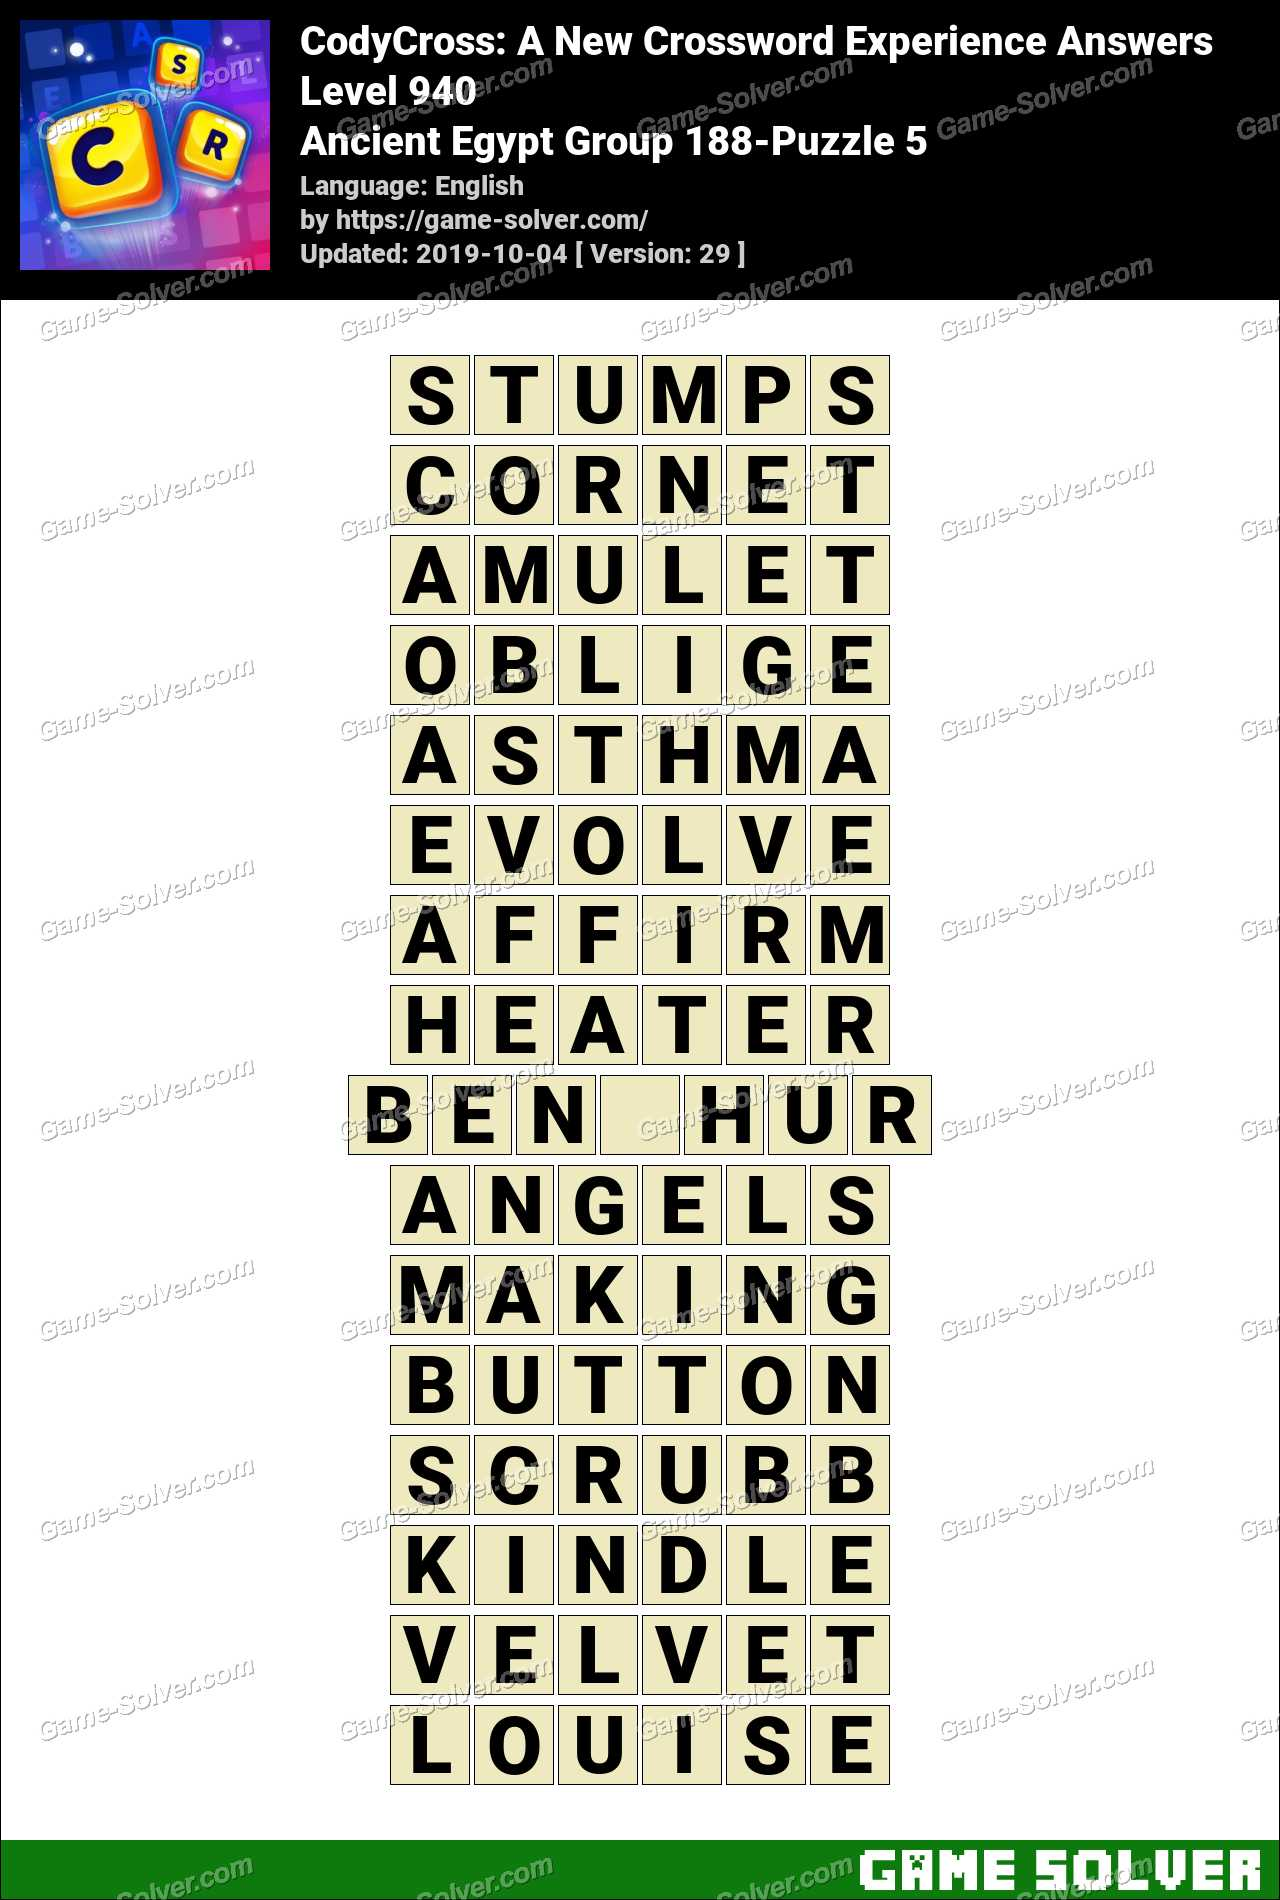 CodyCross Ancient Egypt Group 188-Puzzle 5 Answers